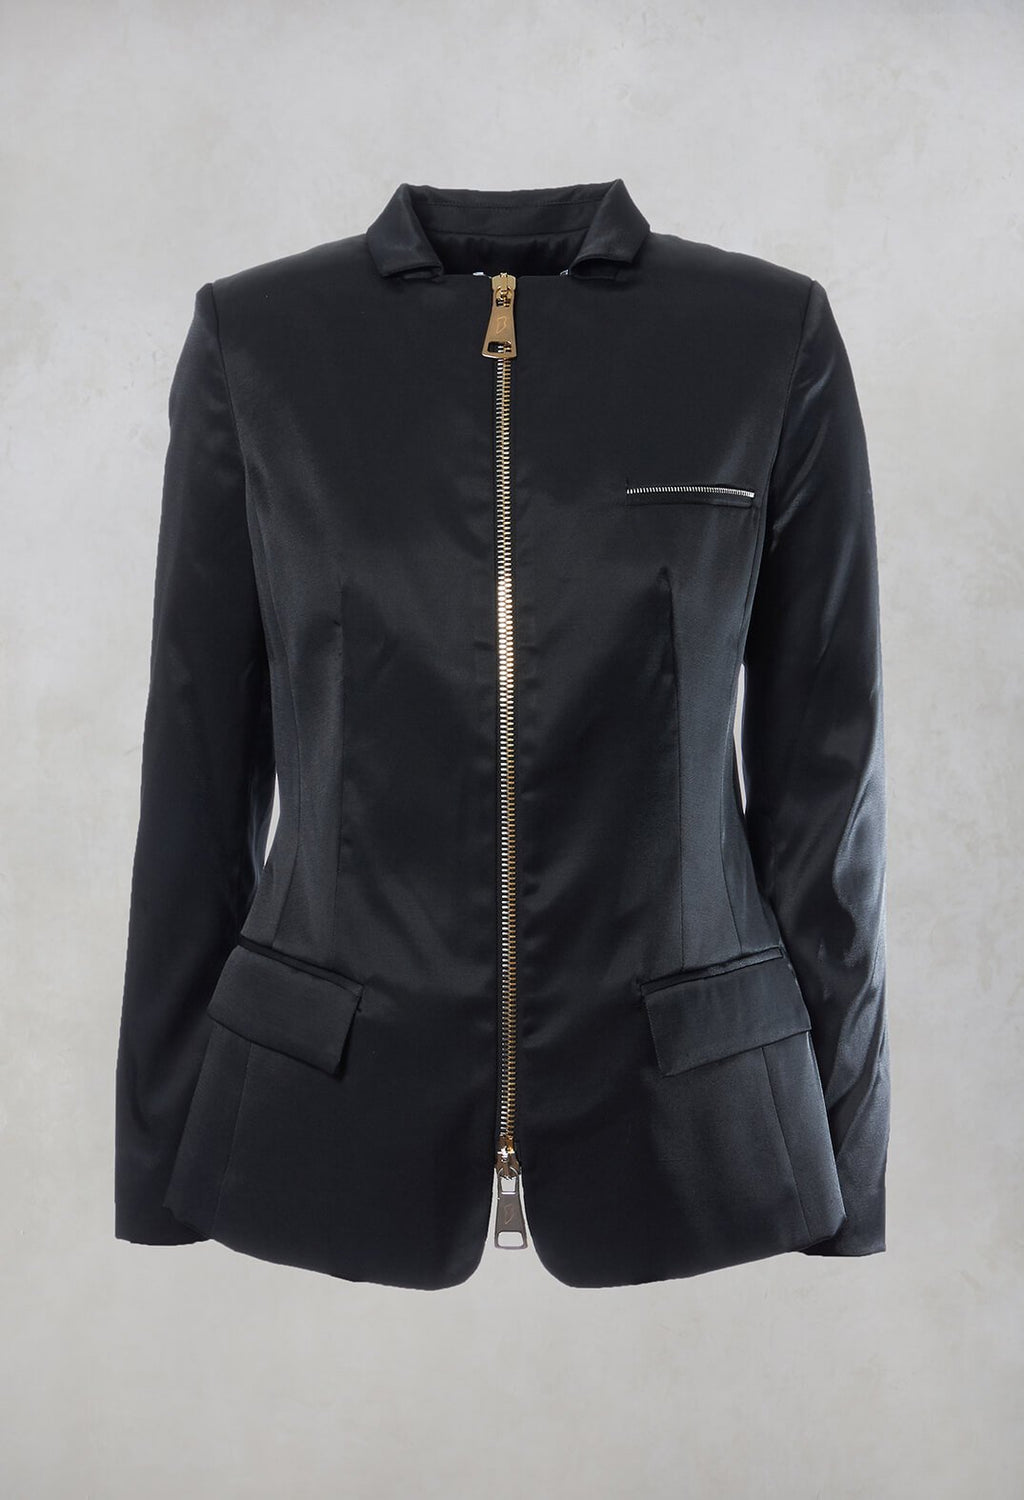 Zipped Jacket in Intrigue